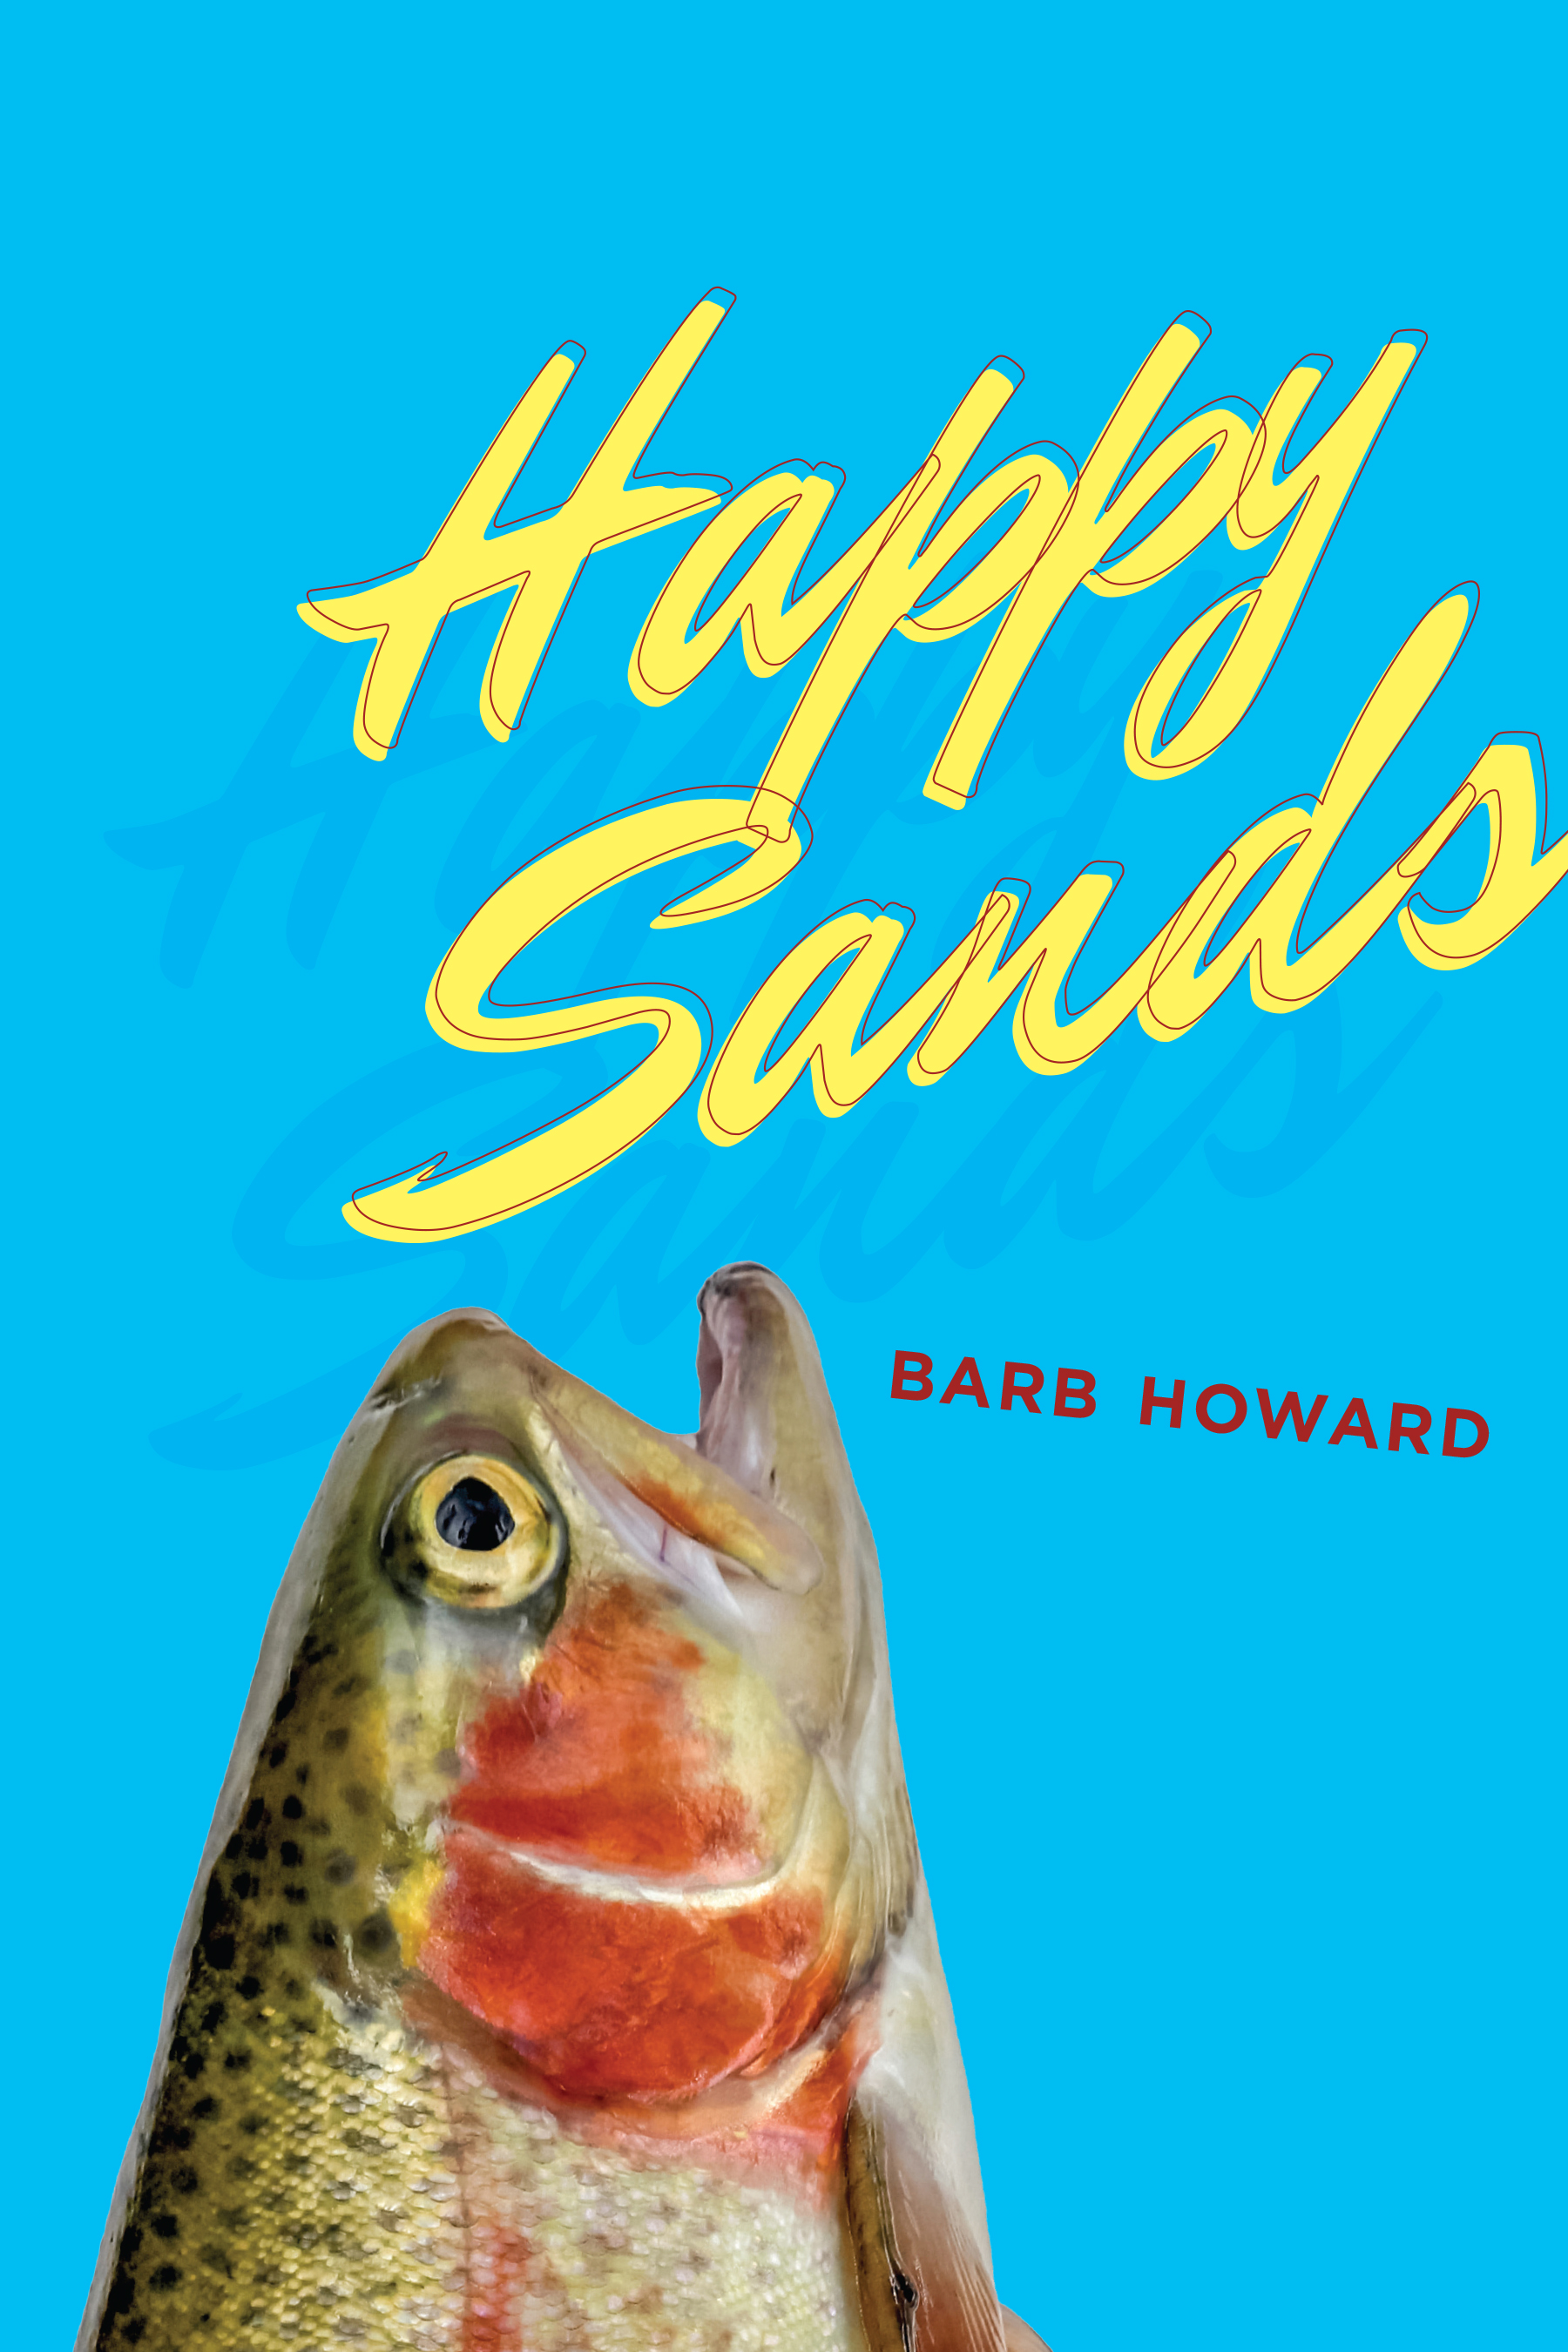 Book Cover Image for: Happy Sands